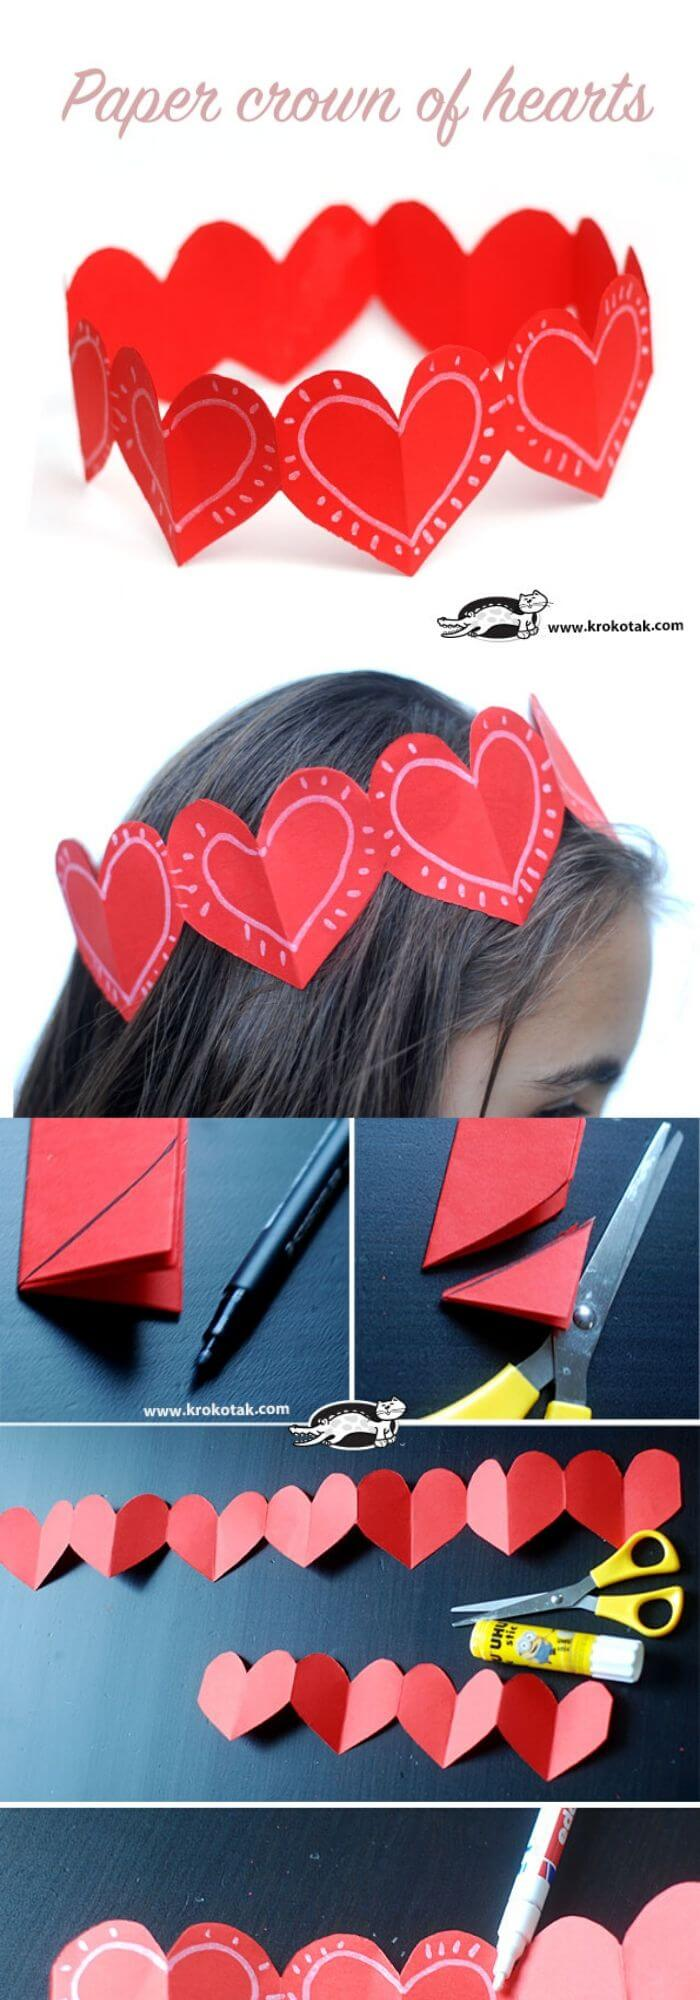 Paper crown of hearts | Heart-Shaped Crafts For Valentine's Day